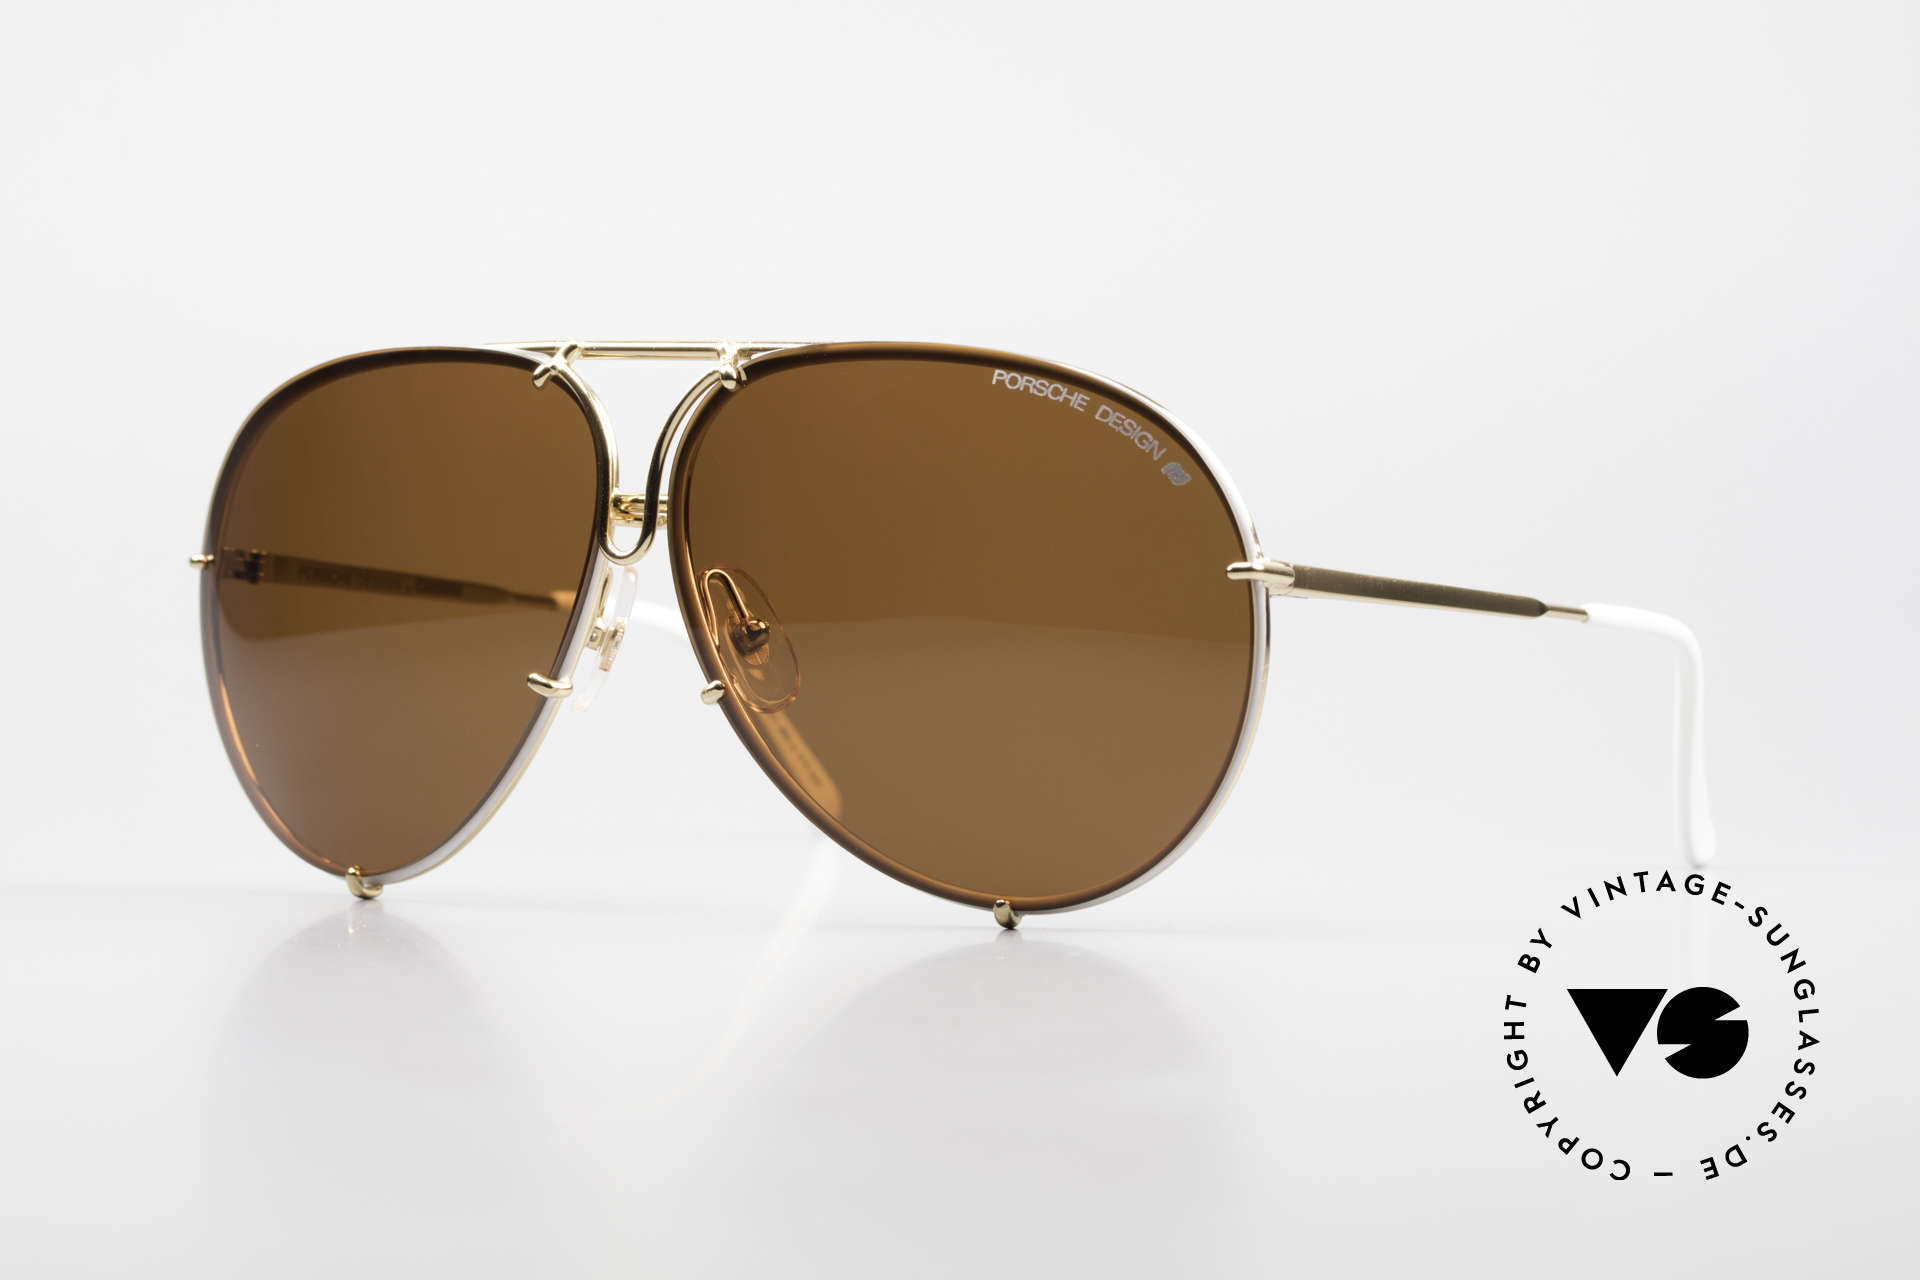 Porsche 5623 Special Edition Vintage Shades, rare interchangeable lenses in brown-gradient & brown, Made for Men and Women